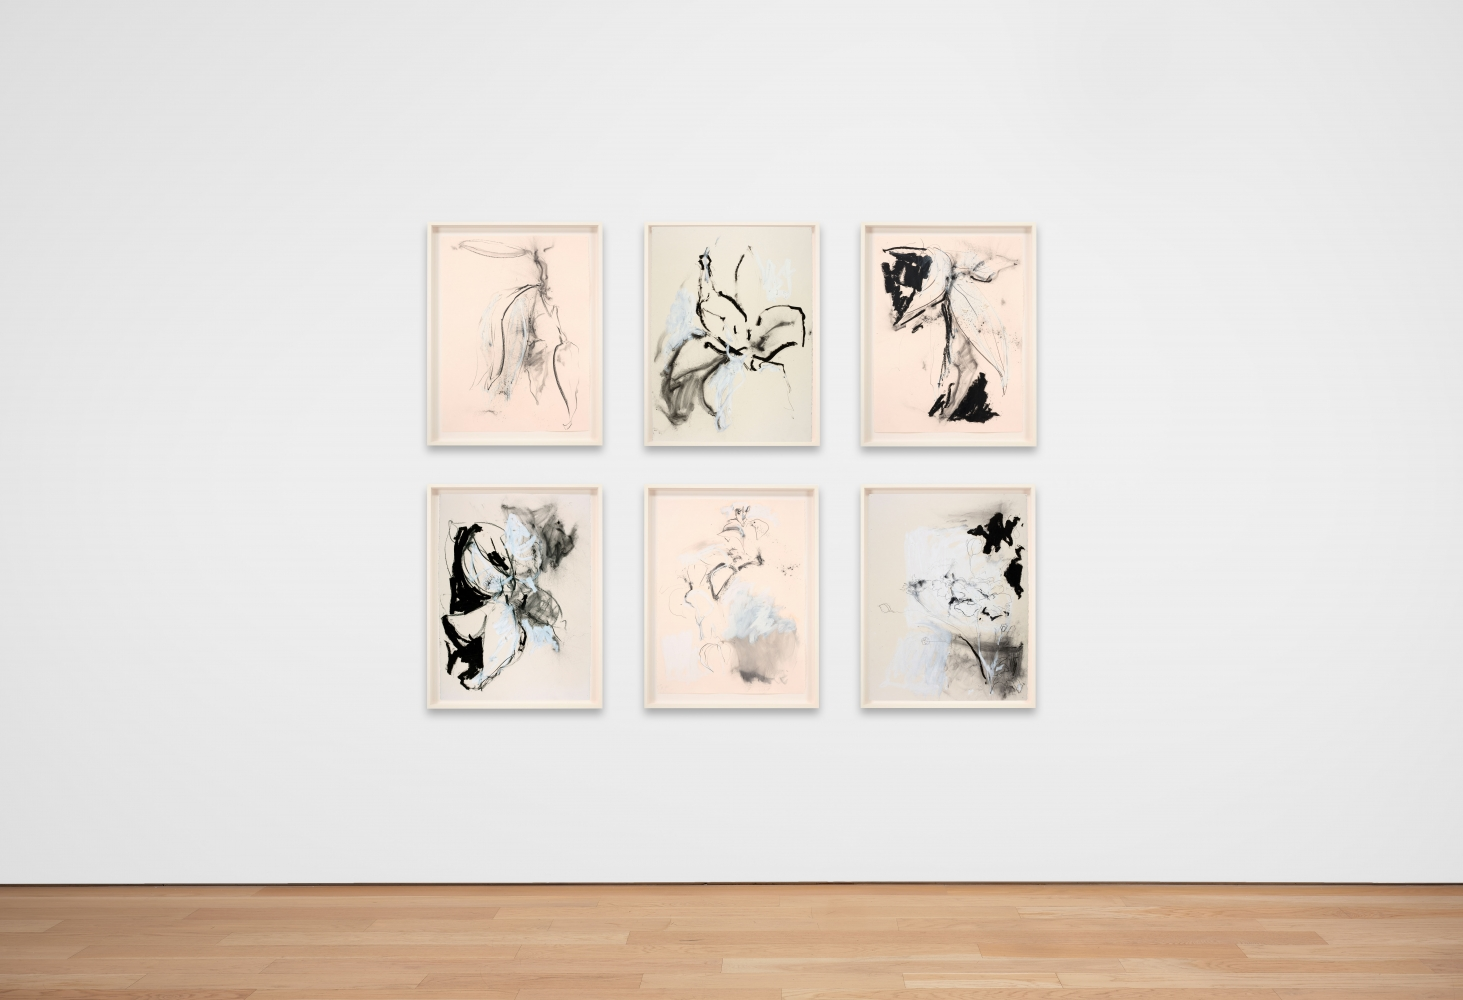 Joseph Havel  First Flowers (S.F.) 2, 2017  Graphite and oil paint on paper  30 x 23 inches  76.2 x 58.4 cm